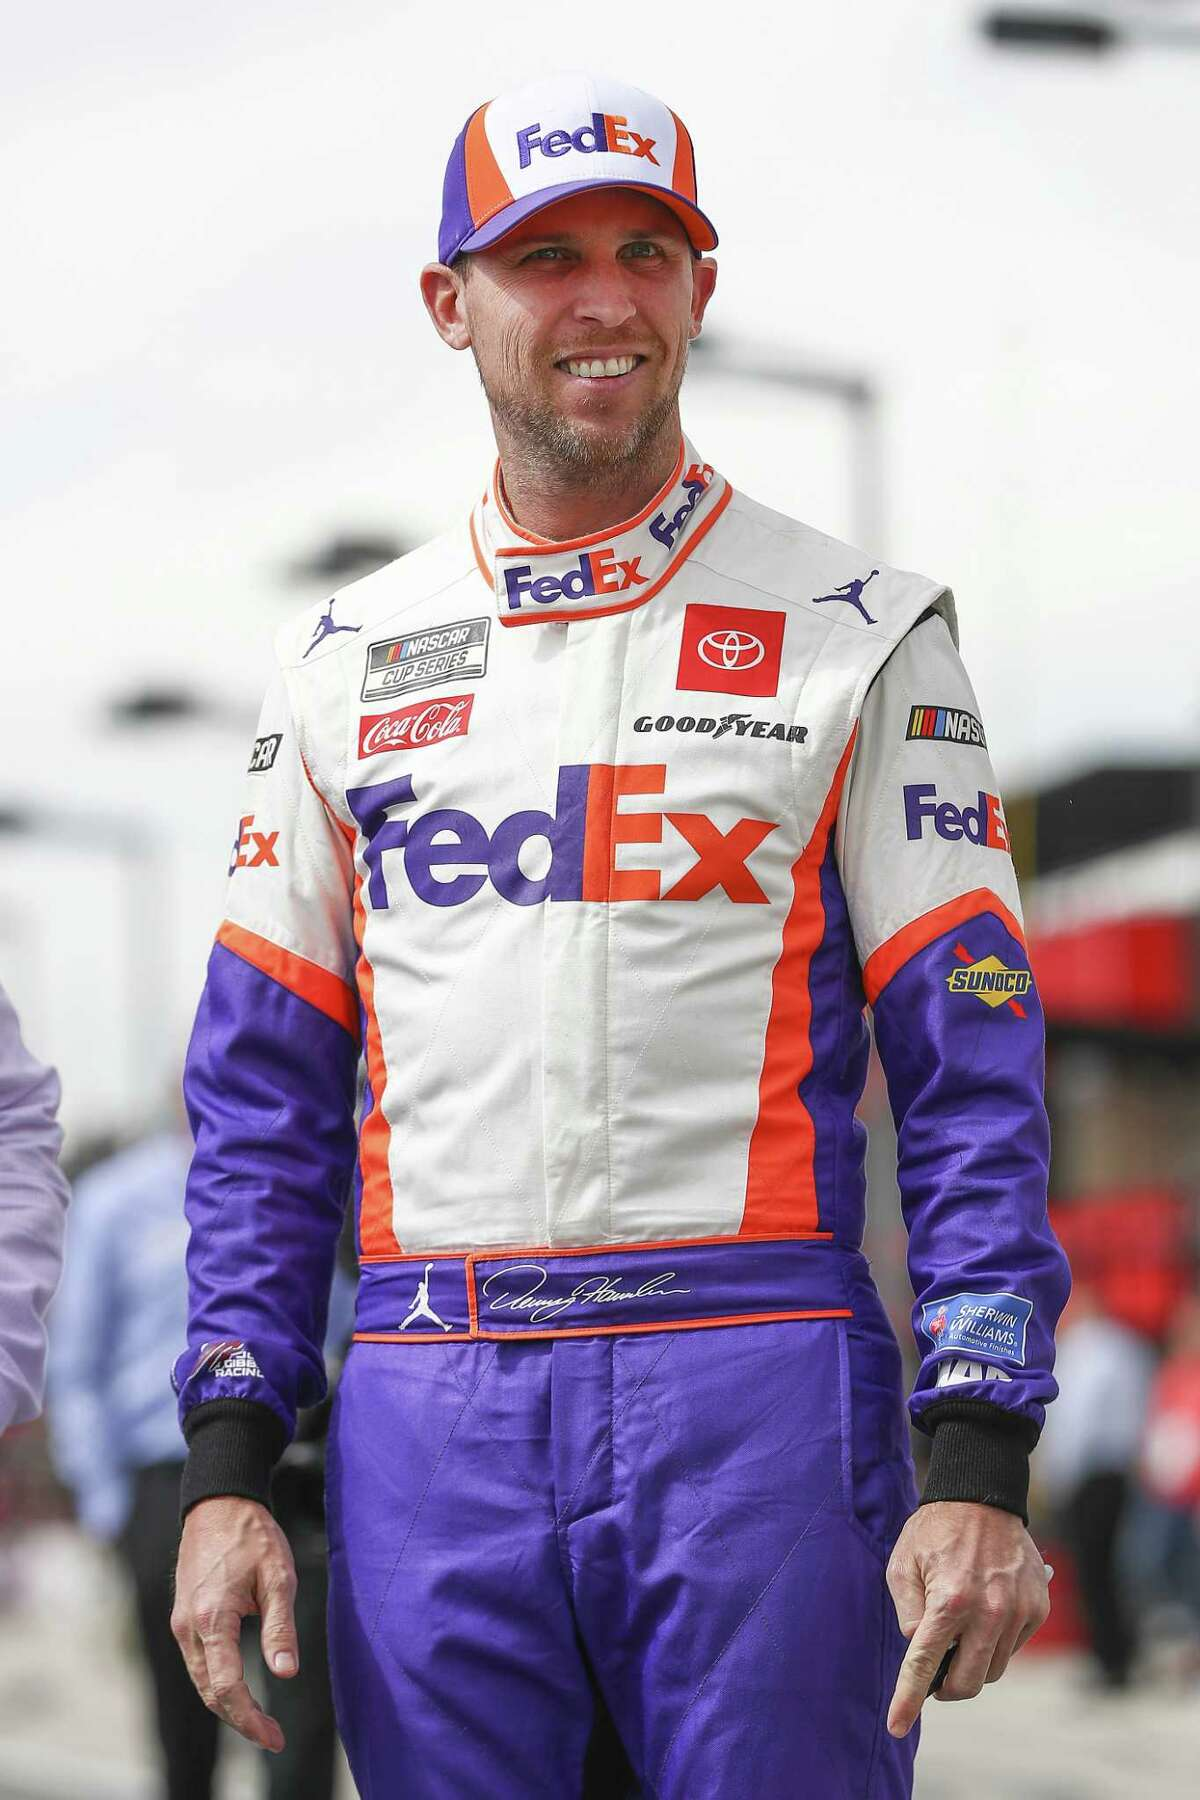 FONTANA, CALIFORNIA - FEBRUARY 29: Denny Hamlin, driver of the #11 FedEx Office Toyota, walks on the grid before qualifying at Auto Club Speedway on February 29, 2020 in Fontana, California. (Photo by Meg Oliphant/Getty Images)